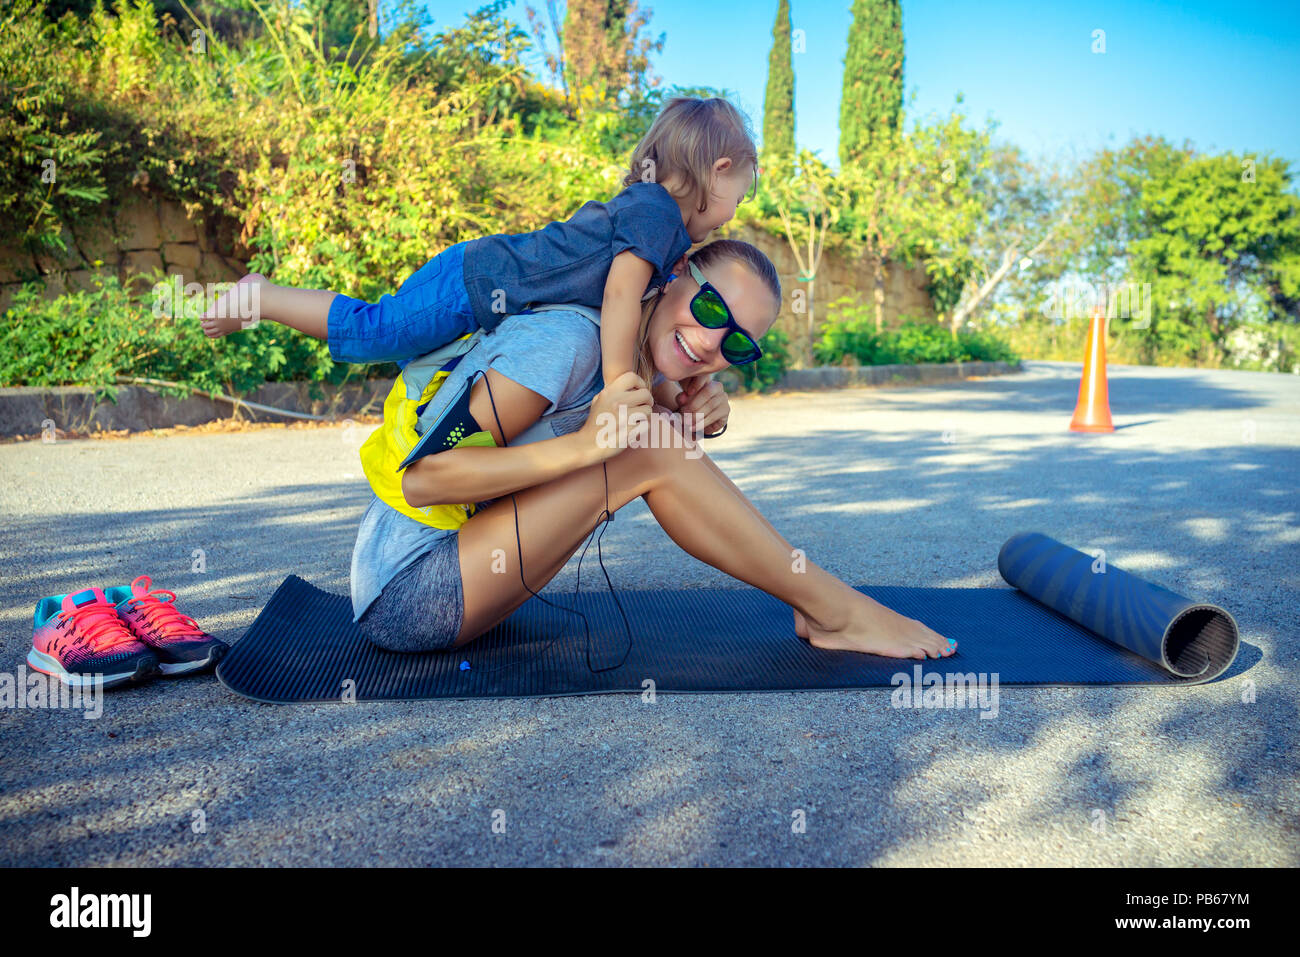 Healthy family life, cute cheerful baby boy plays piggy back and helps her to do stretching, beautiful woman with her little son doing sport excercise - Stock Image